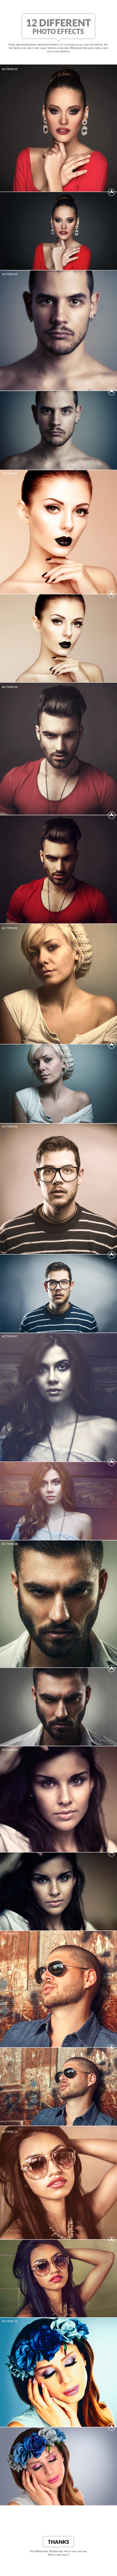 12 Different  Photo Effects - Photo Effects Actions